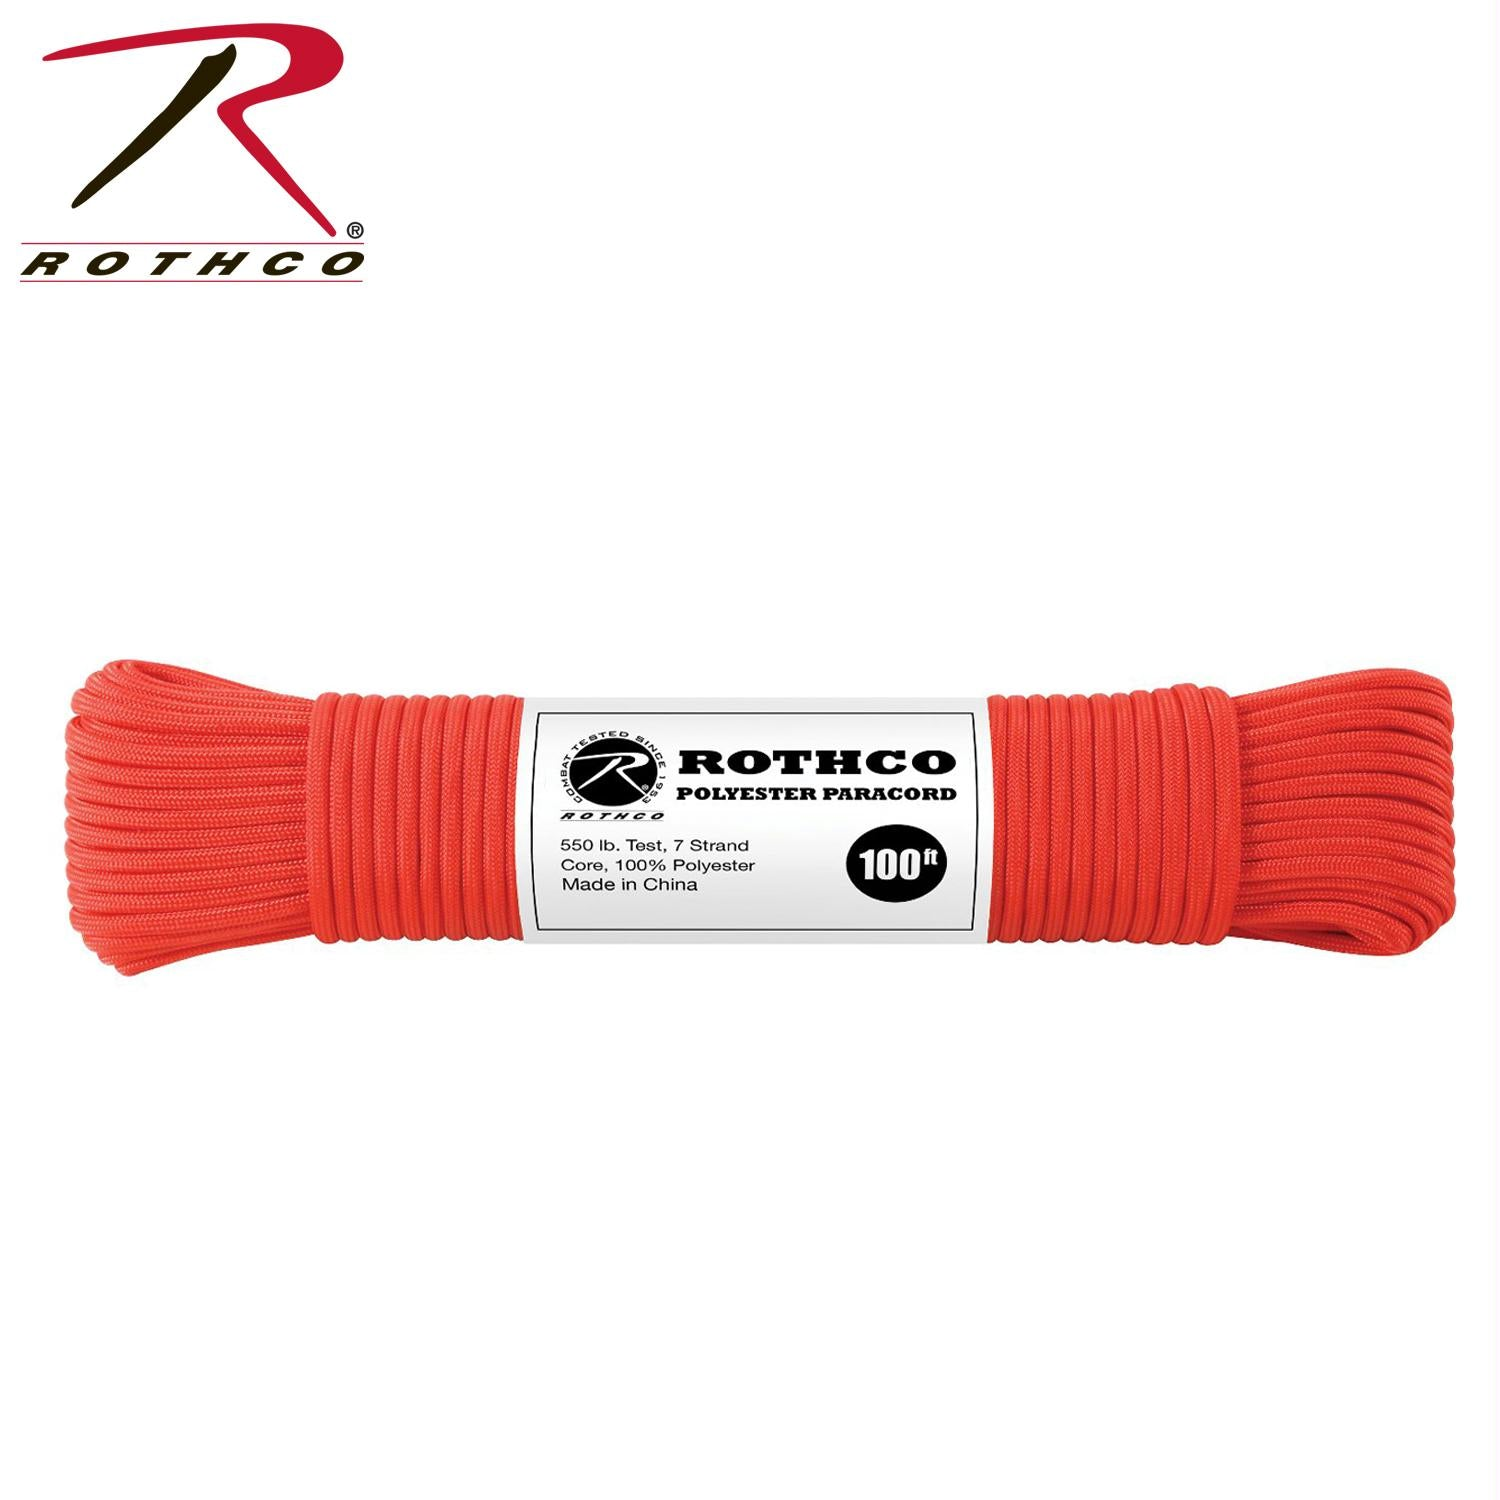 Rothco Polyester Paracord - Red / 100'